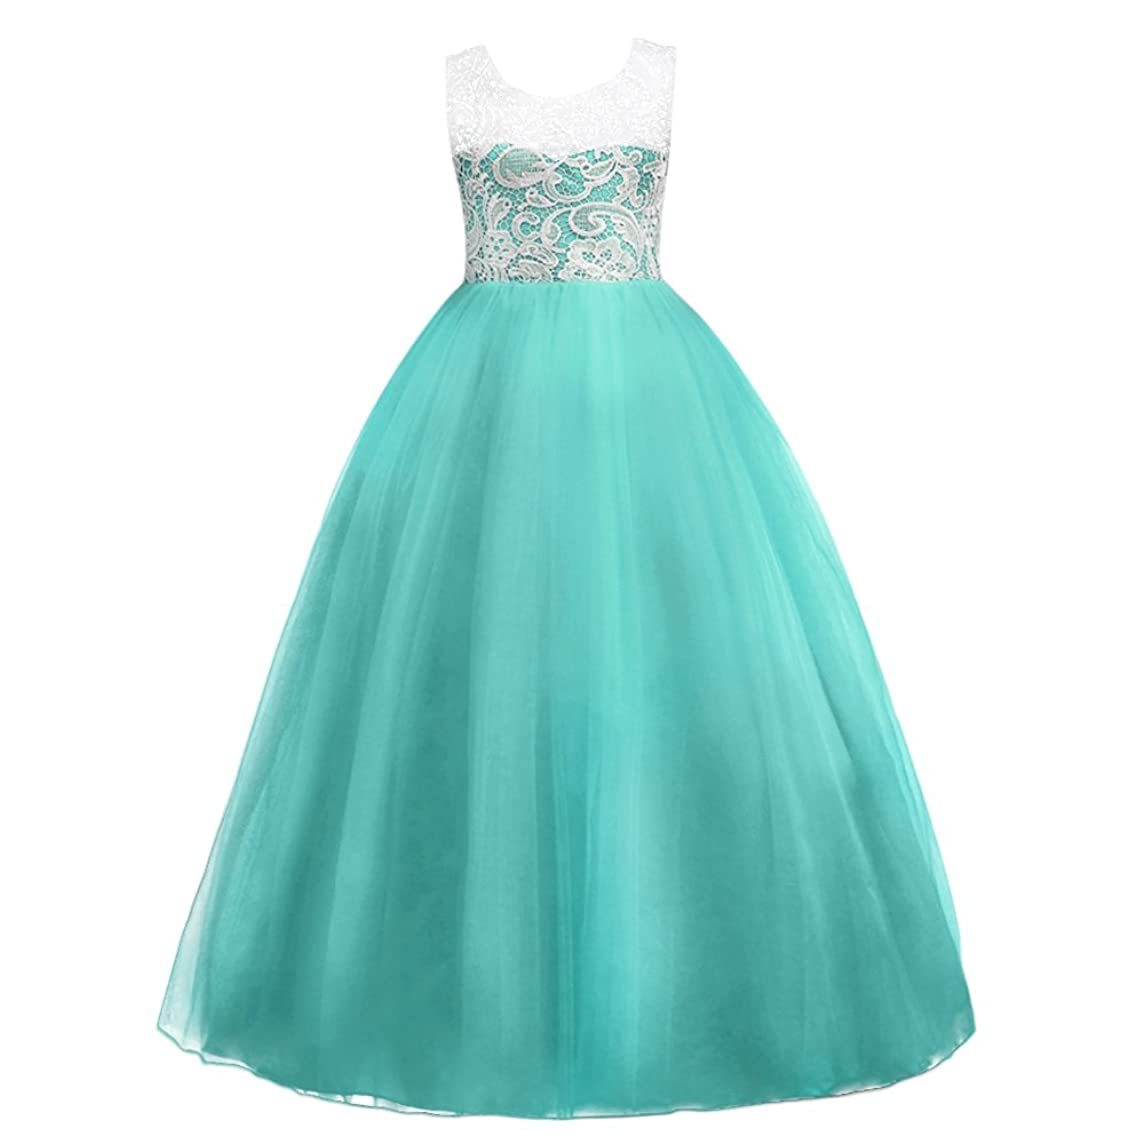 MYRISAM Flower Girls Tulle Lace Dresses Sleeveless Birthday Pageant Dress Wedding Bridesmaid Party Prom Ball Gowns